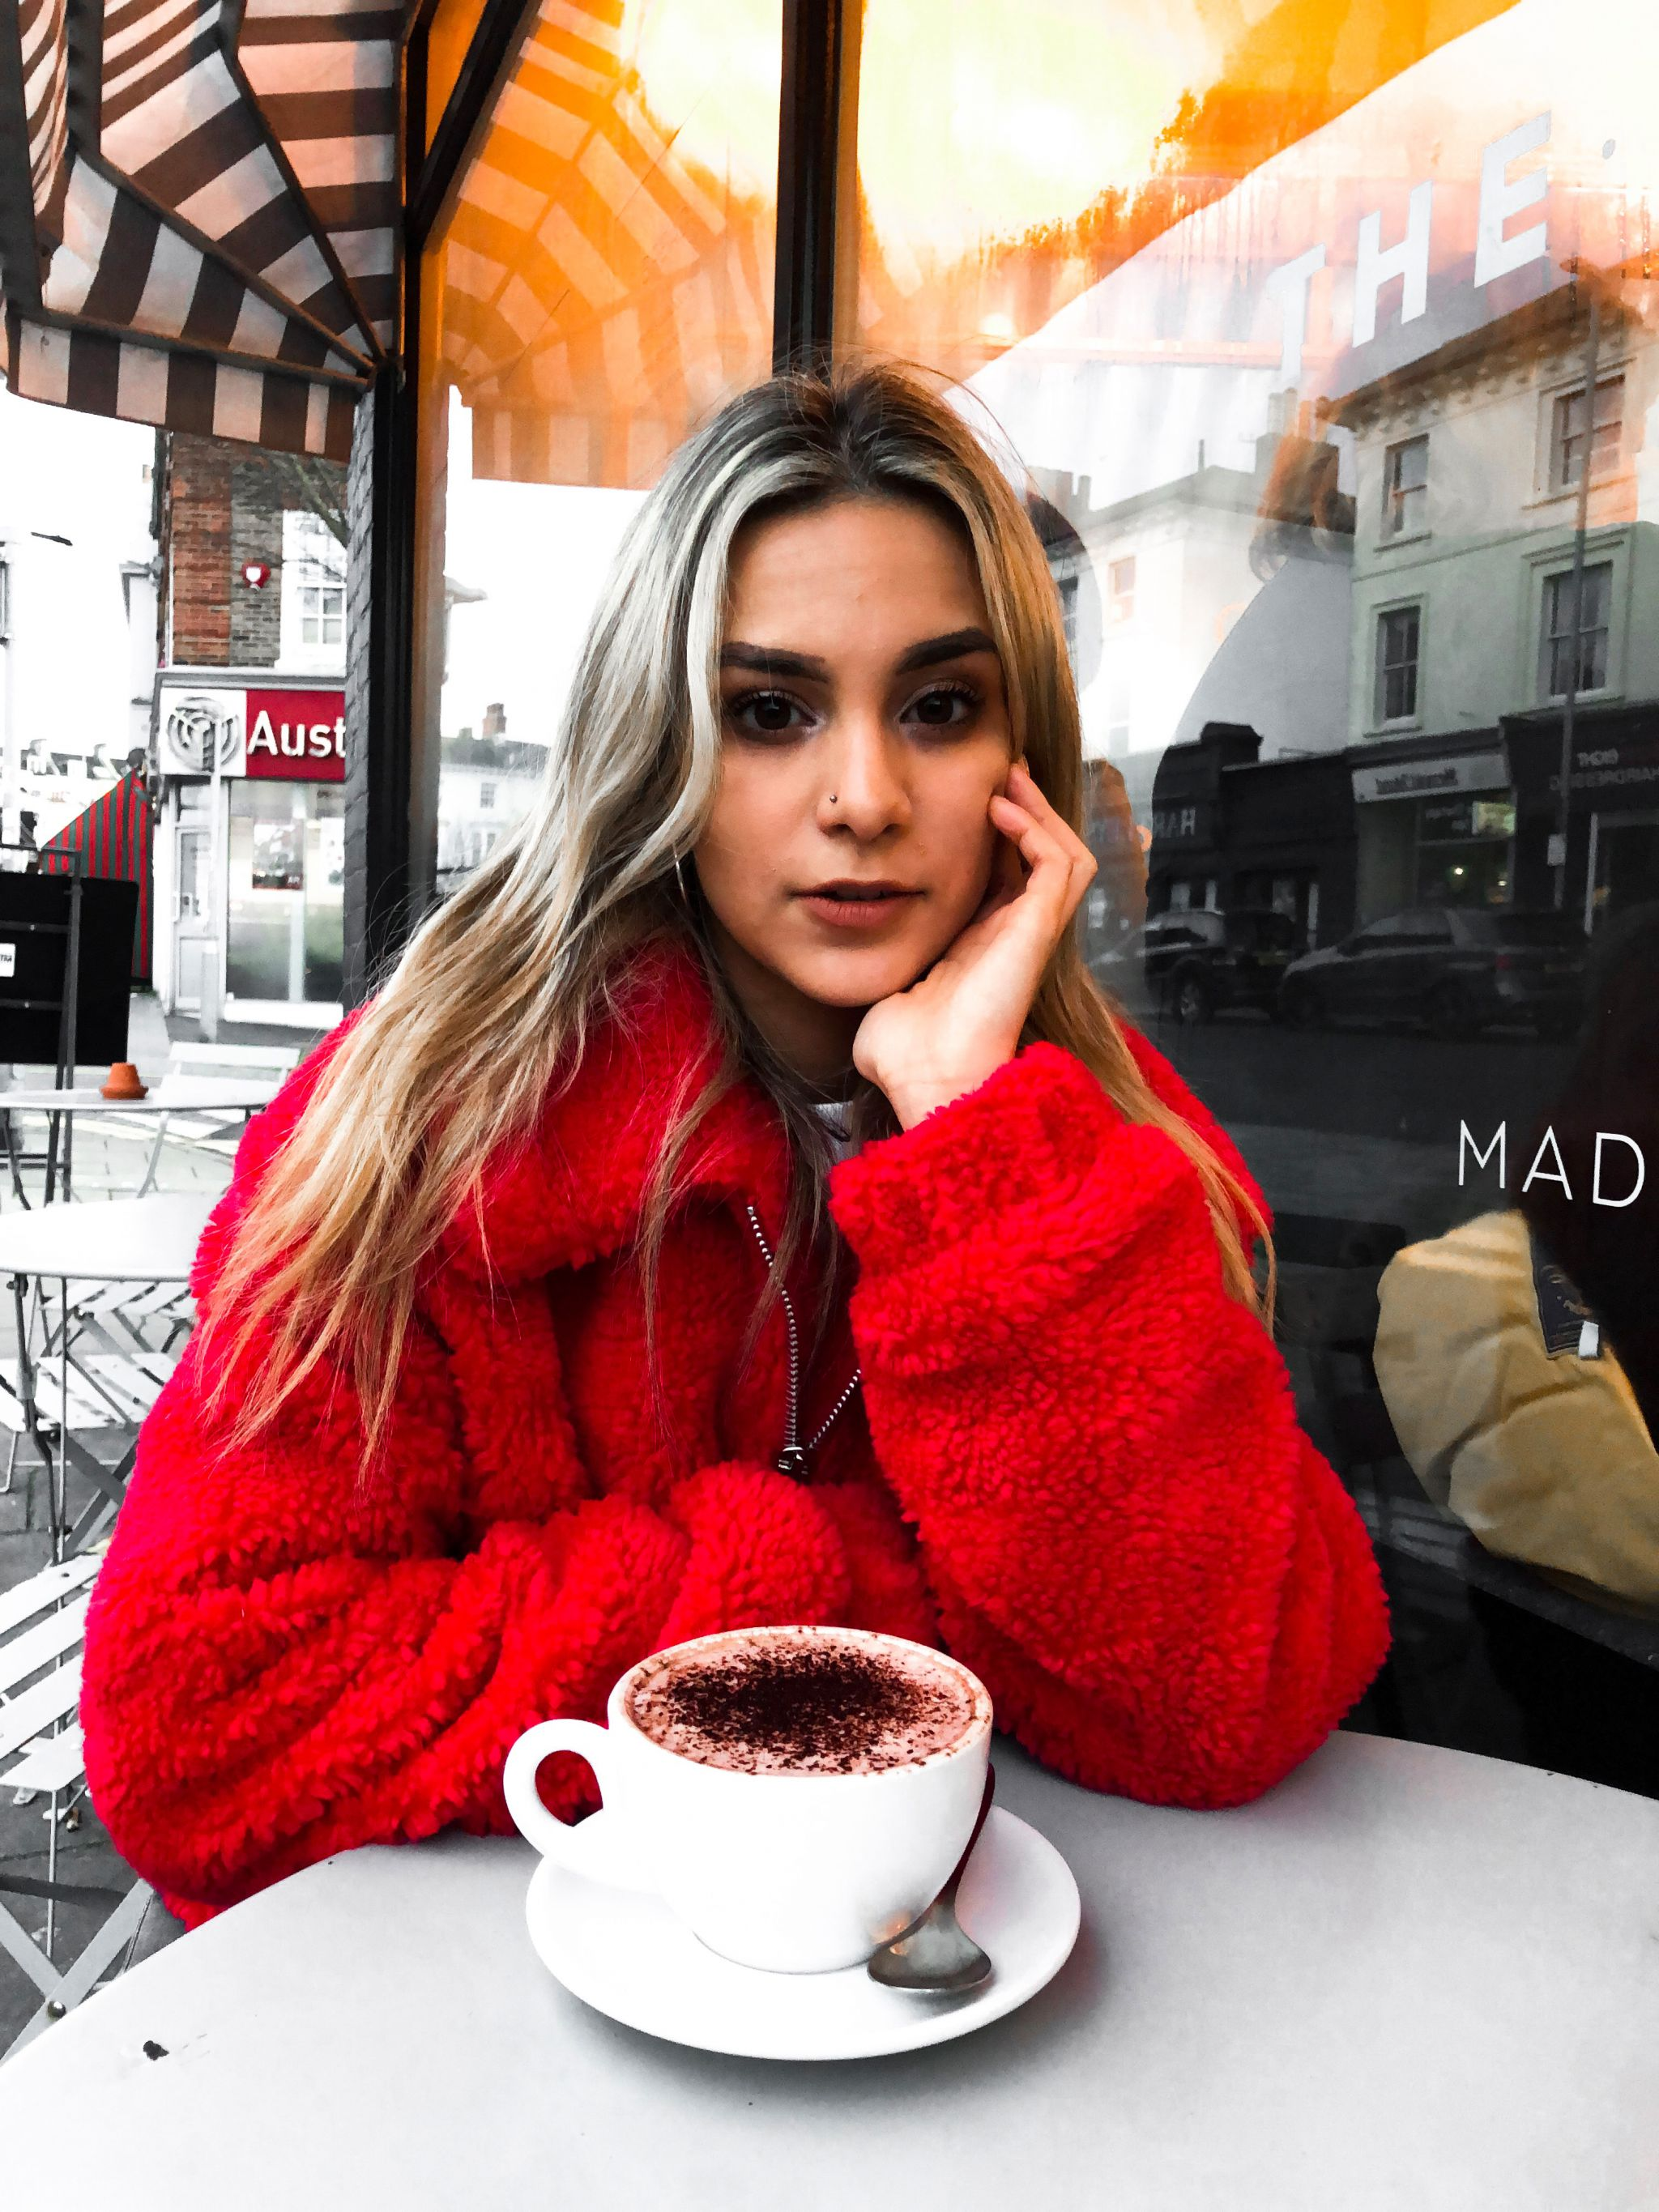 yasmin stefanie red teddy coat urban outfitters